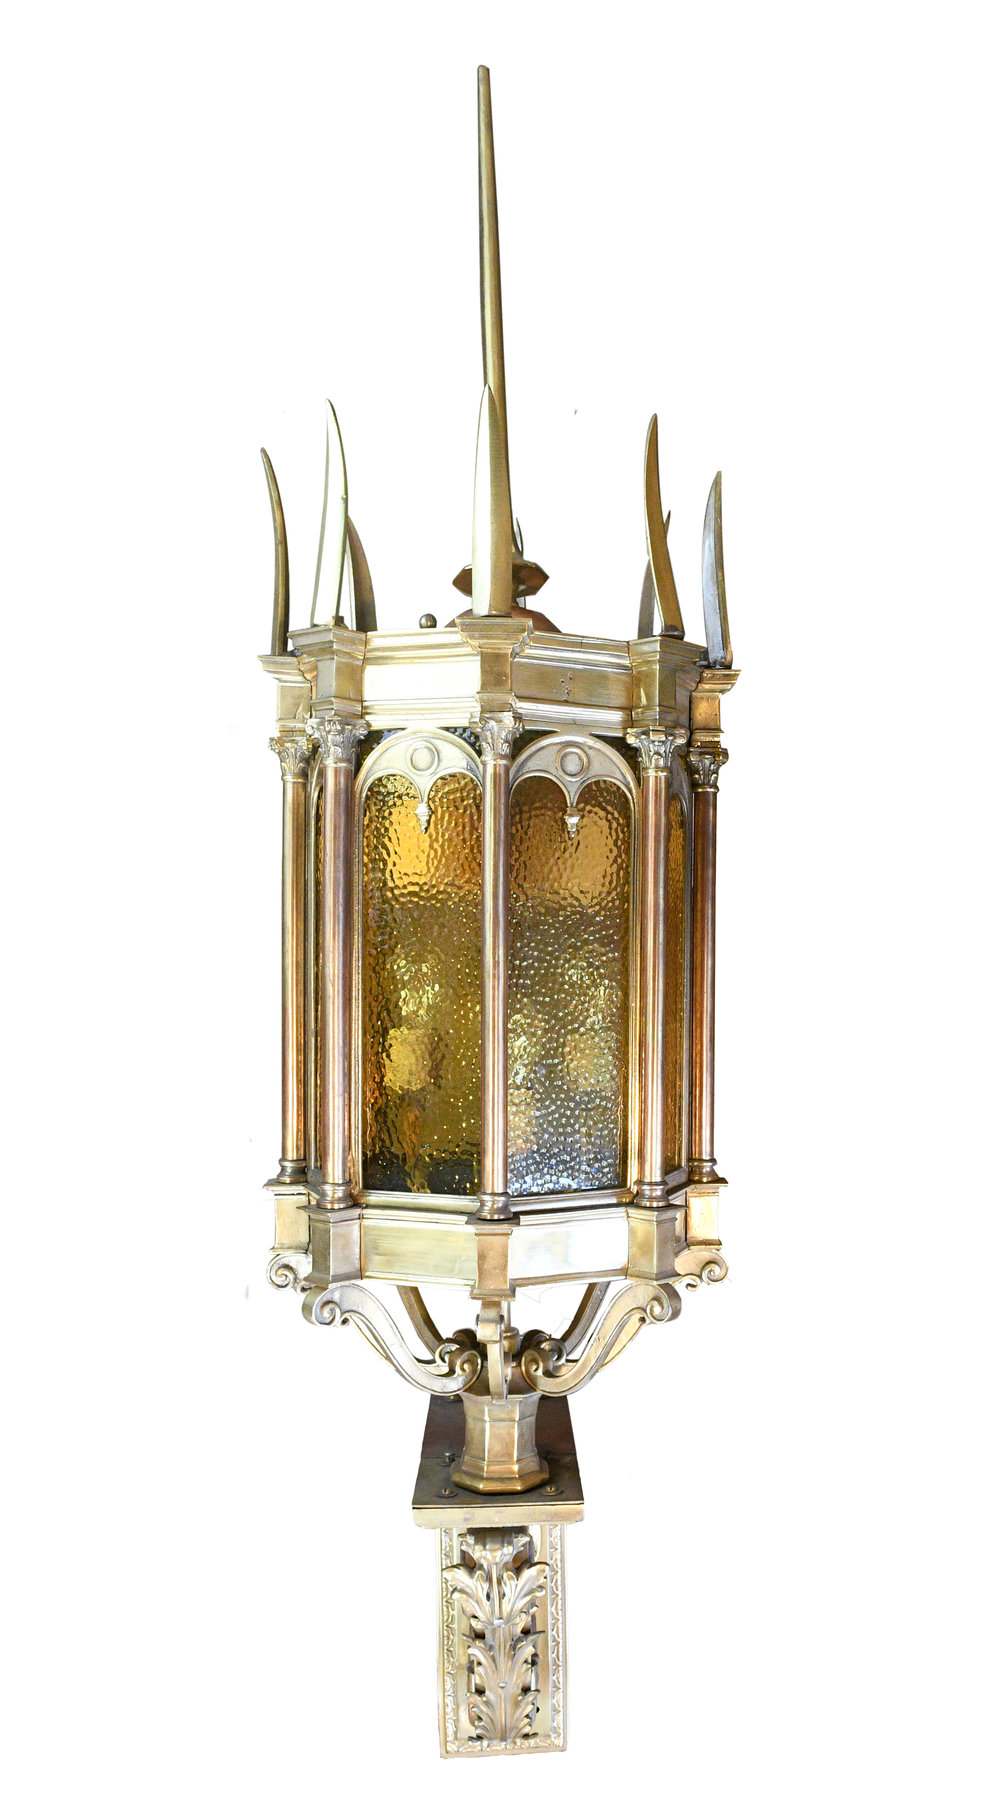 bronze exterior sconce with spikes